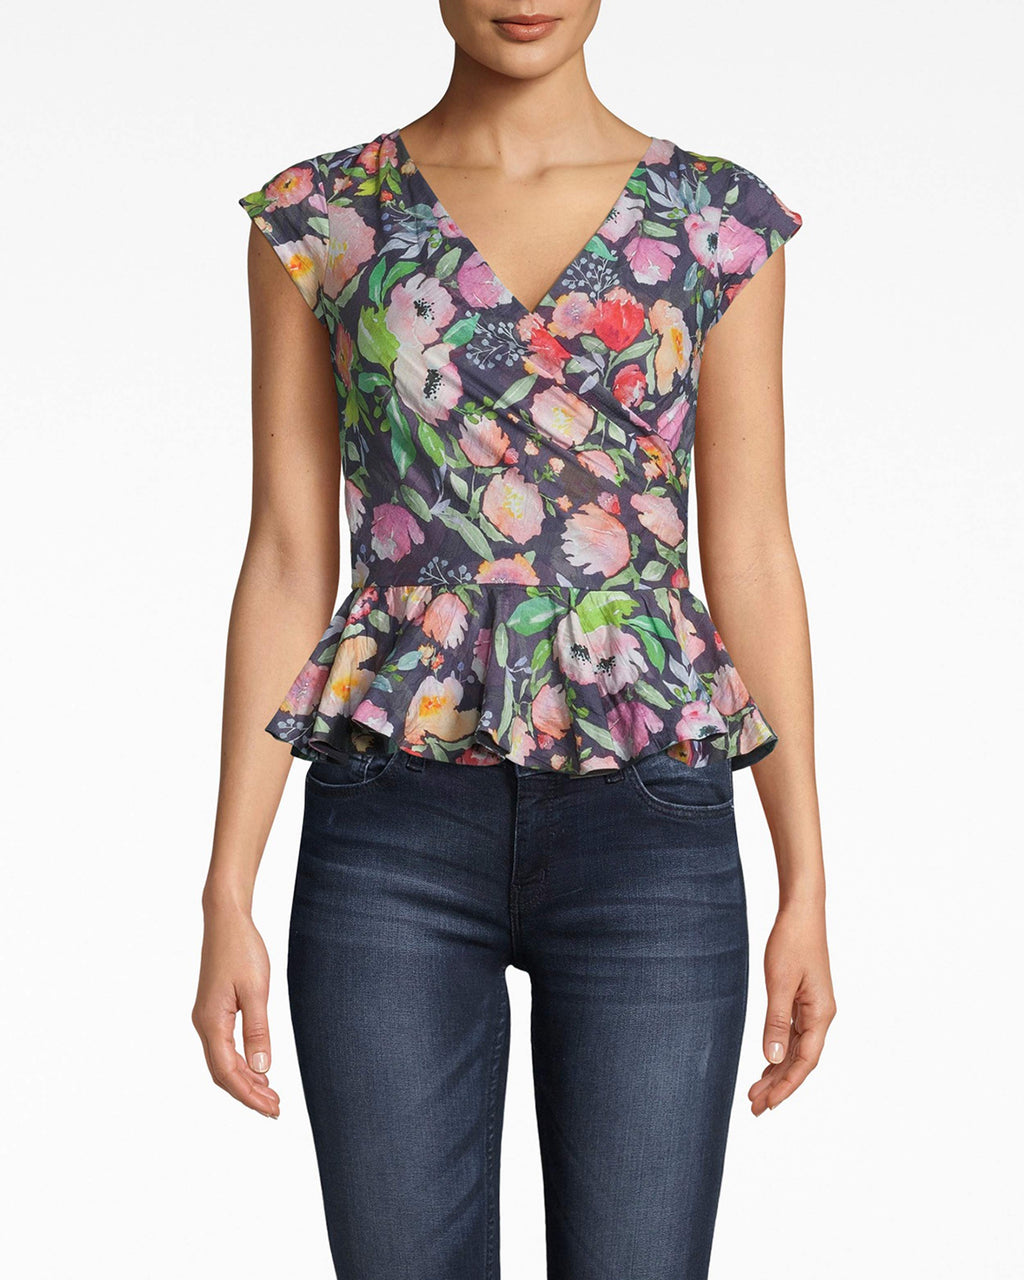 BD20114 - WATERCOLOR FLORAL COTTON METAL PEPLUM TOP - tops - shirts - THIS TOP IS BEYOND FLATTERING. FITTED WITH A PEPLUM FLARE, THIS PIECE HUGS ALL THE RIGHT PLACES. MADE FROM OUR SIGNATURE COTTON METAL, THE SLIGHT SHIMMER PAIRED WITH THE FLORAL PATTERN MAKES IT ALL THE MORE EYE CATCHING.